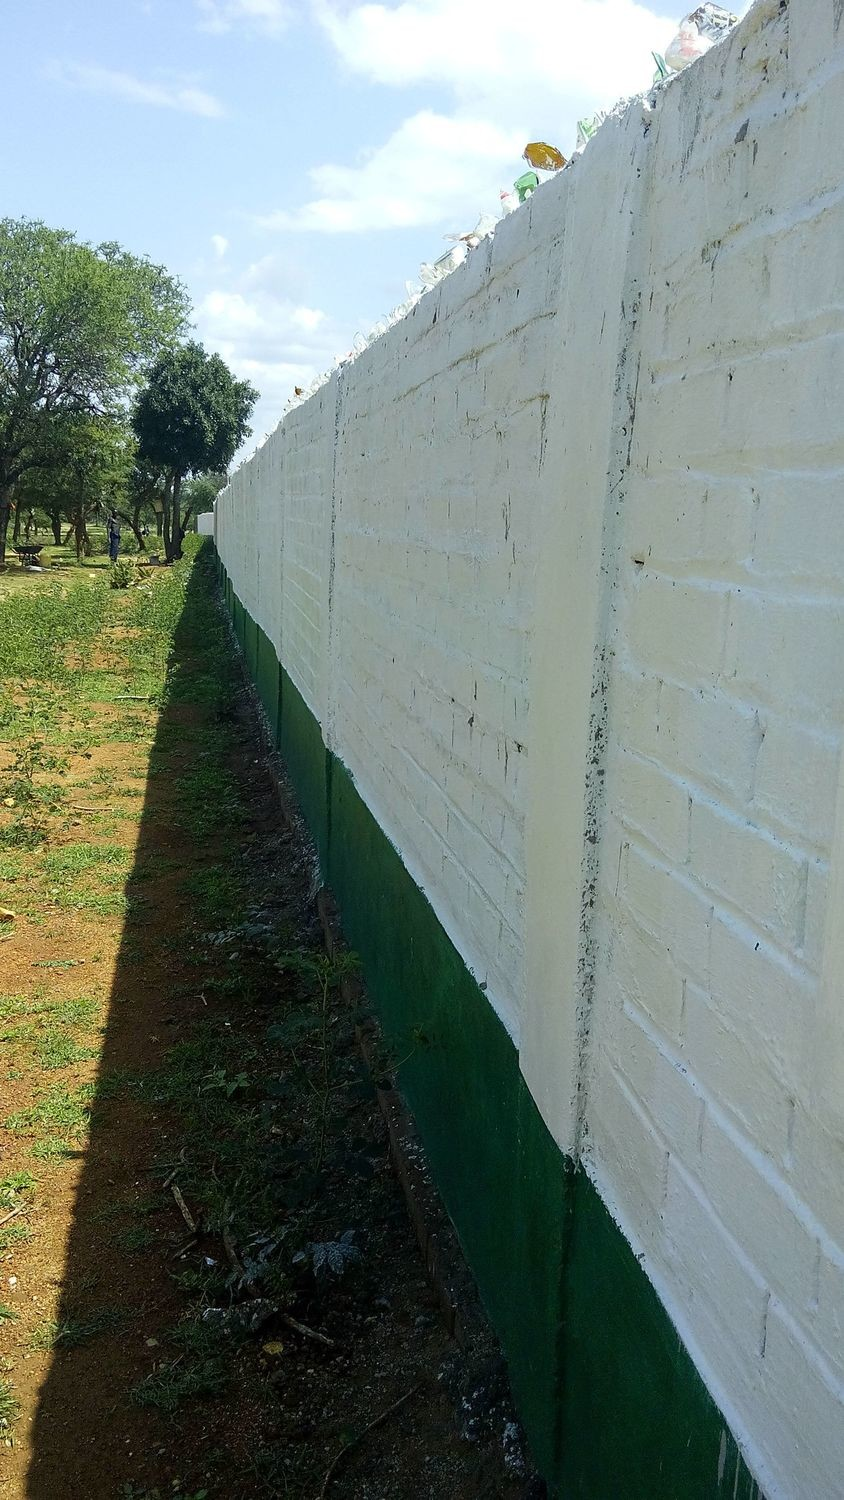 Security Wall - 1 Foot